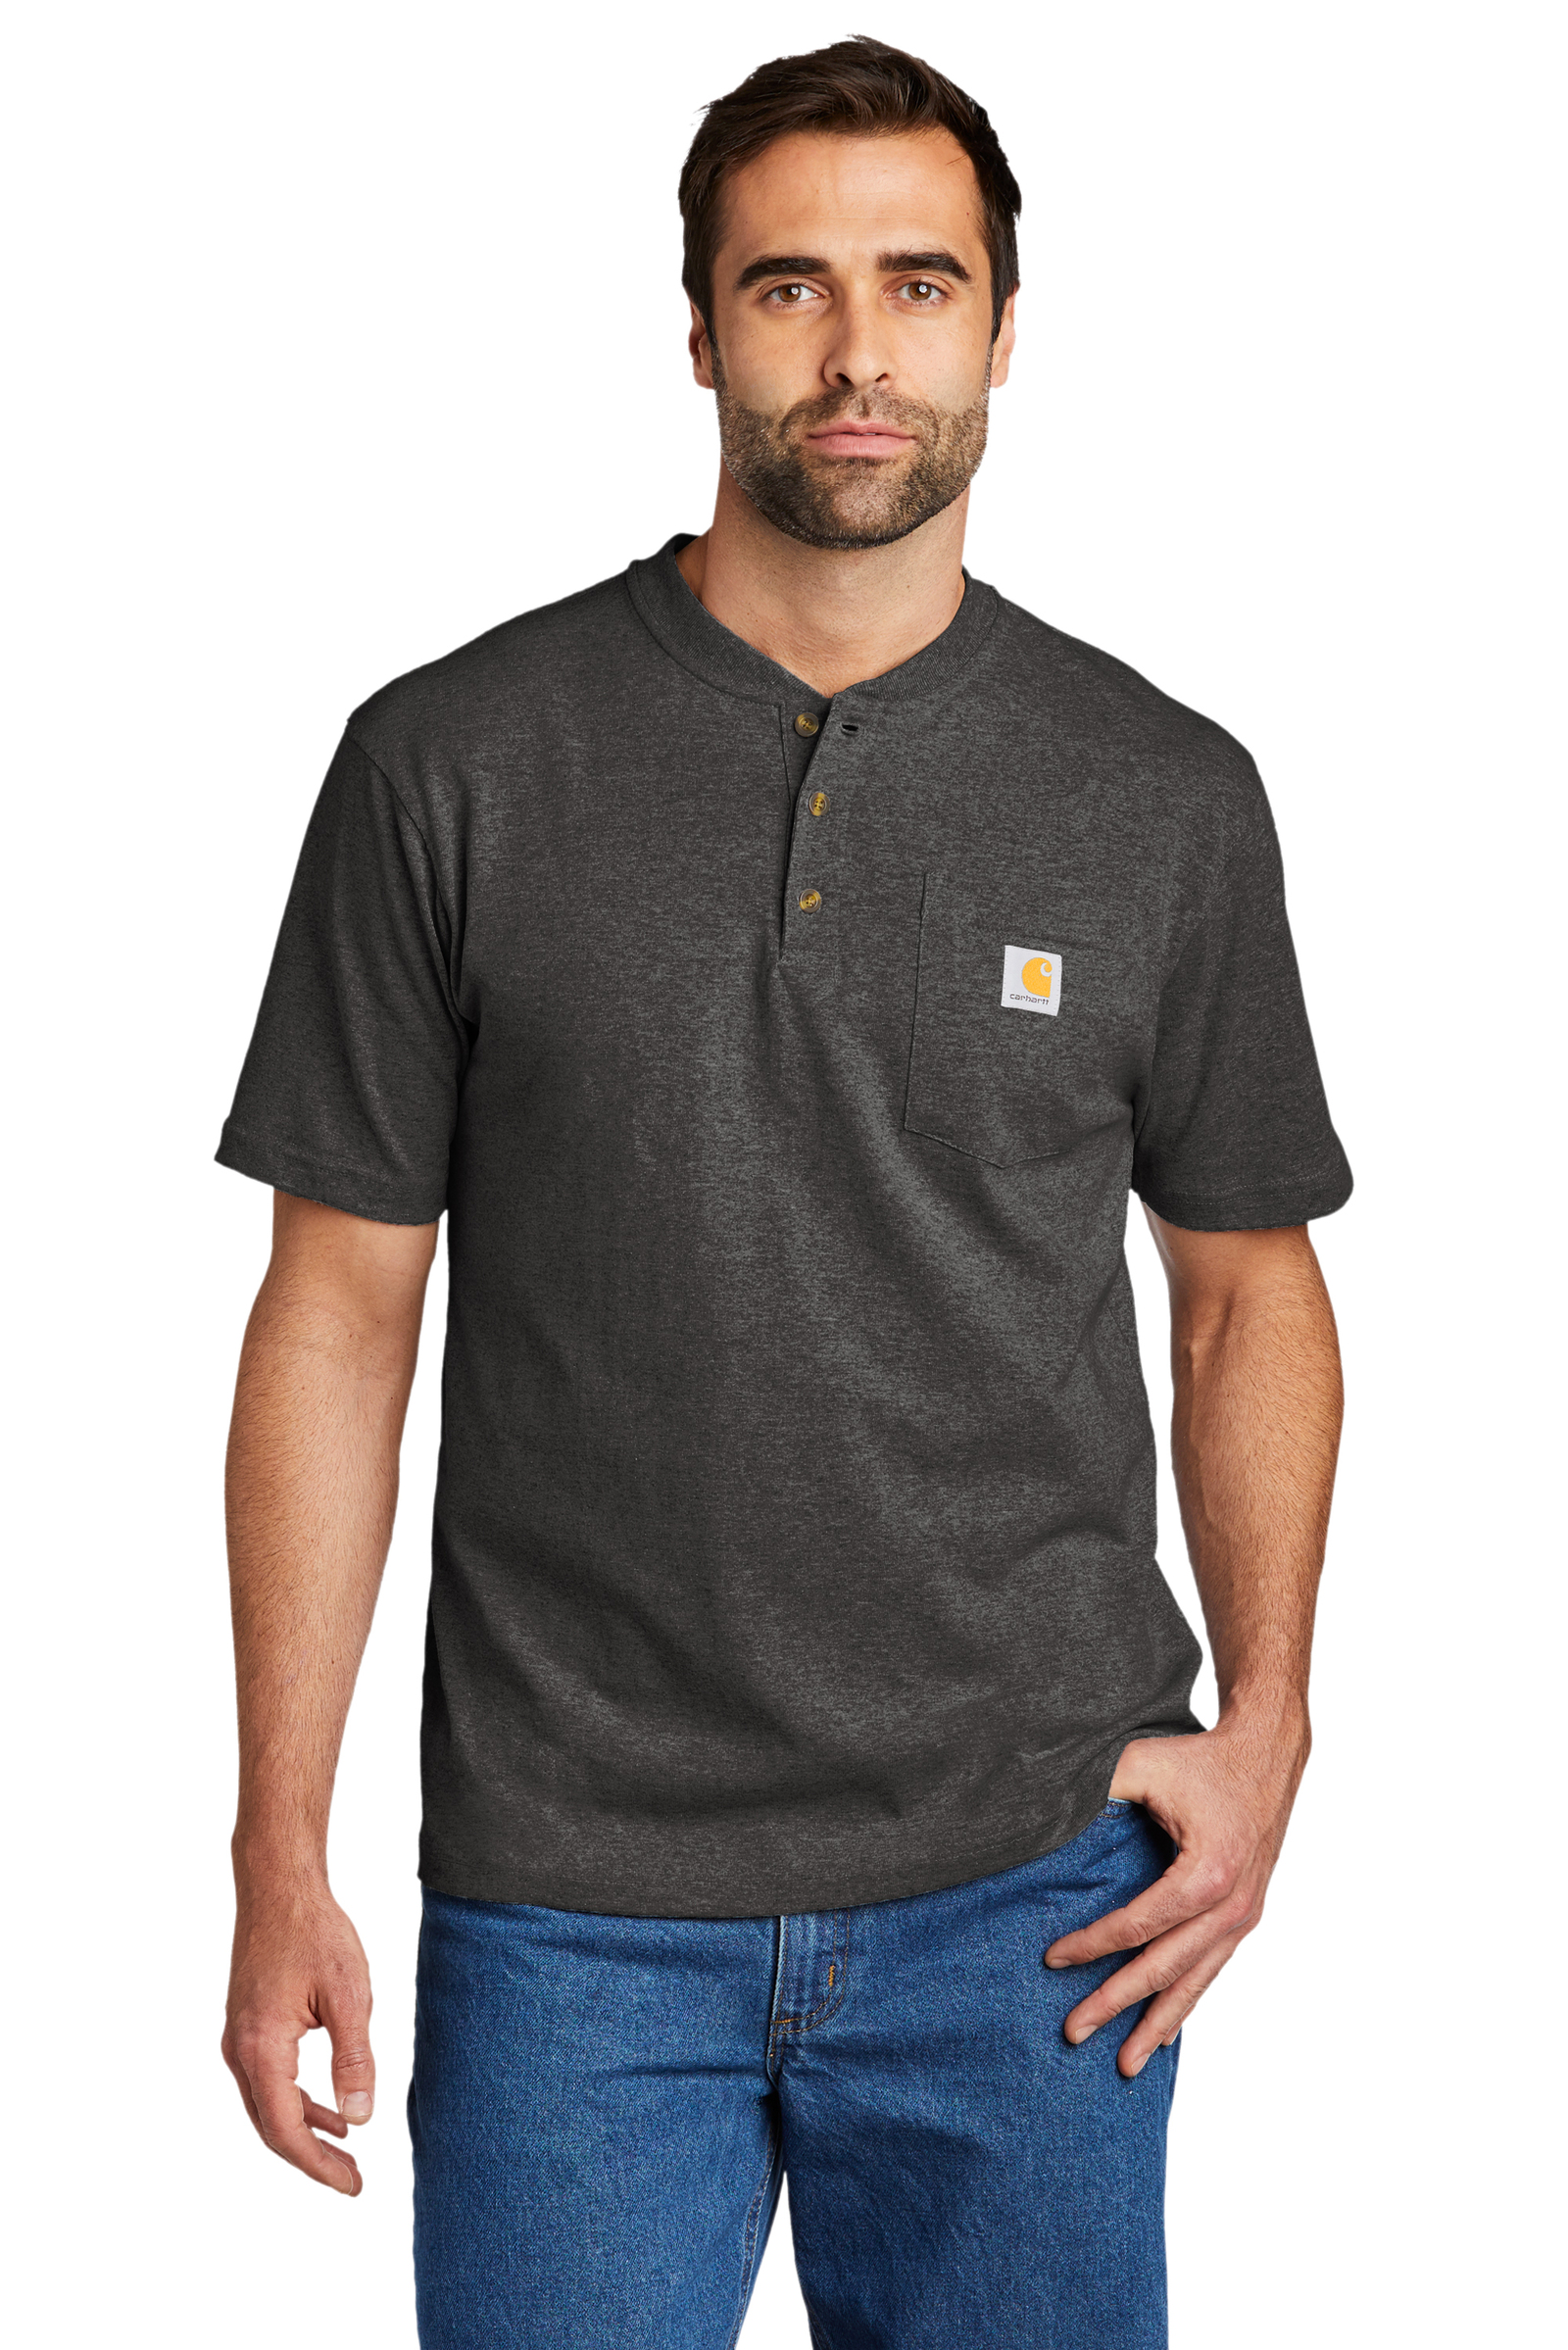 Carhartt Embroidered Men's Short Sleeve Henley T-Shirt